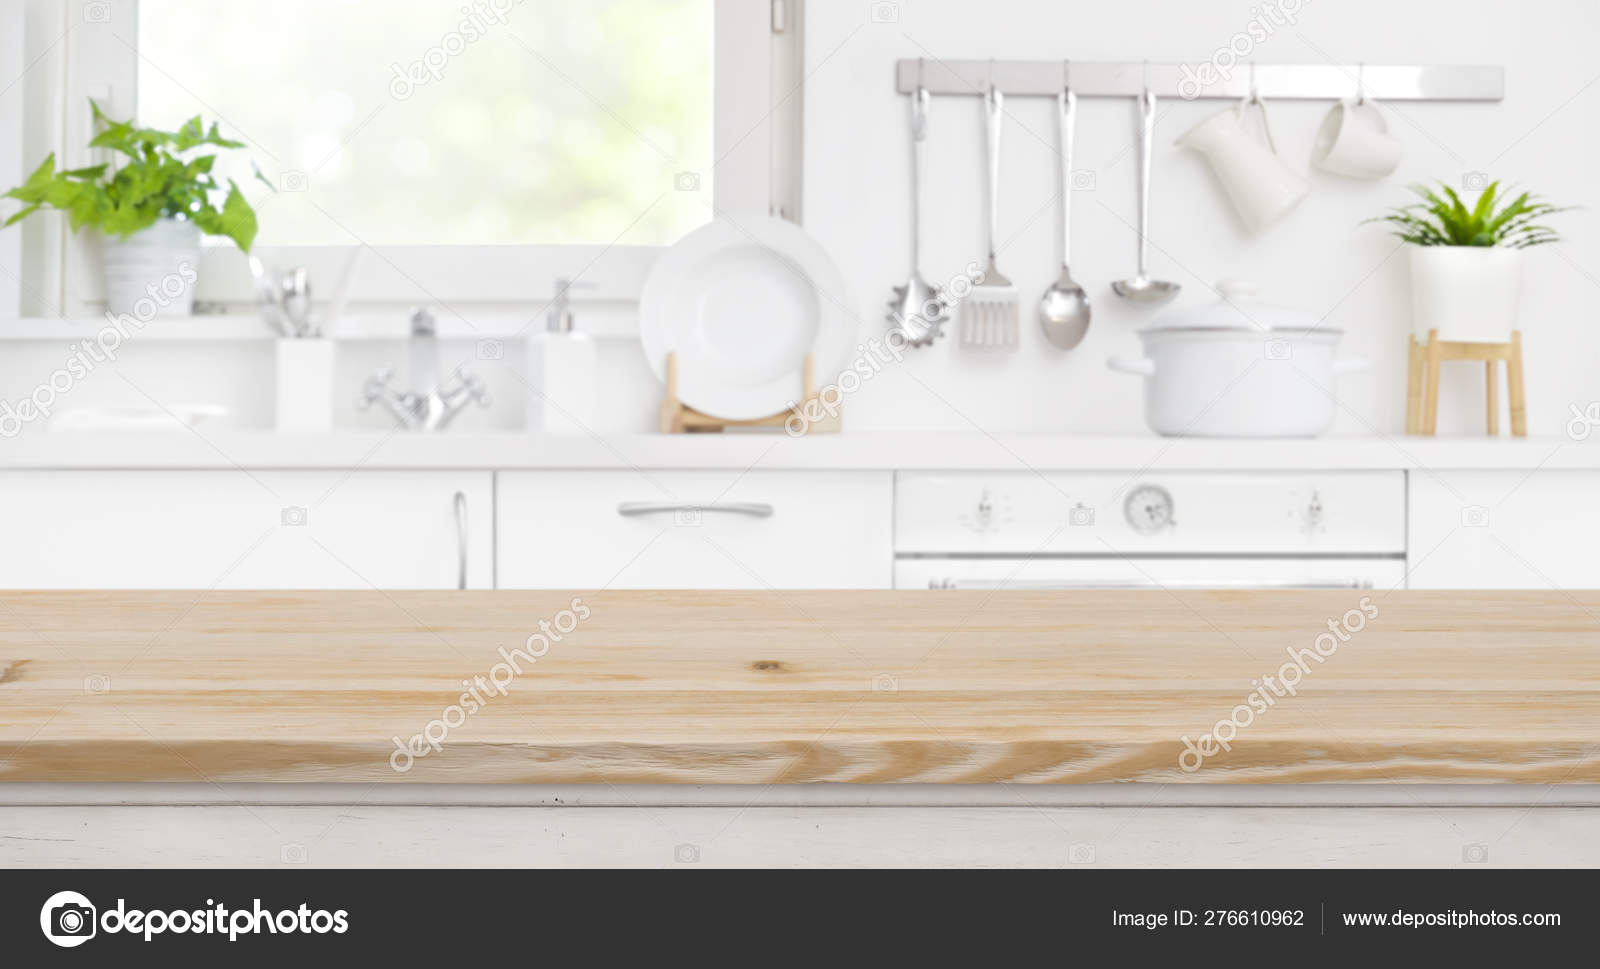 Wood table top on blur kitchen room and window background 9